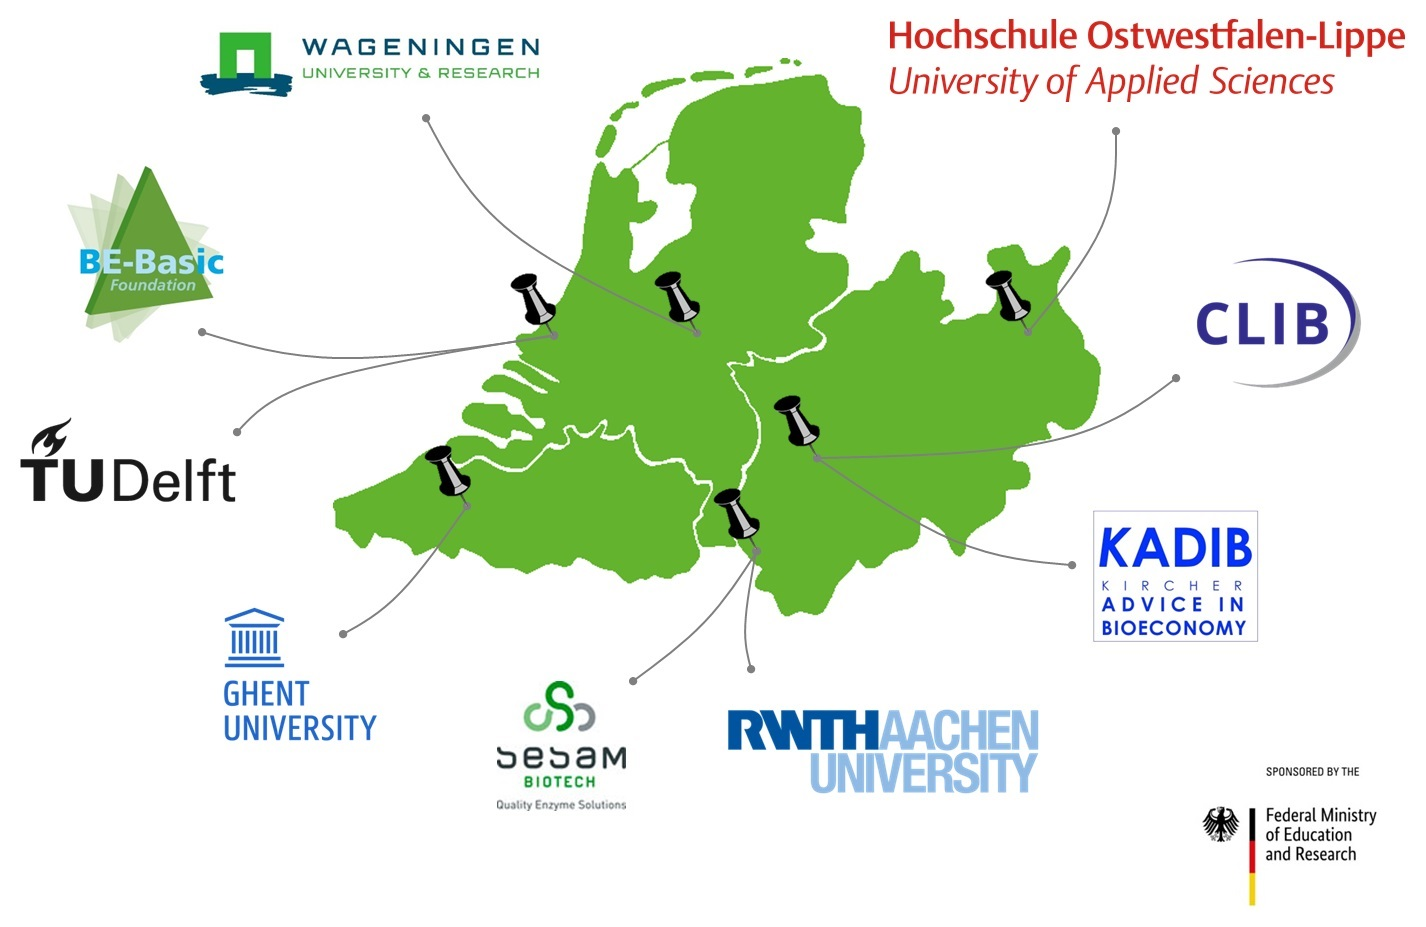 map of BIG-Cluster institutions involved in the MOOC